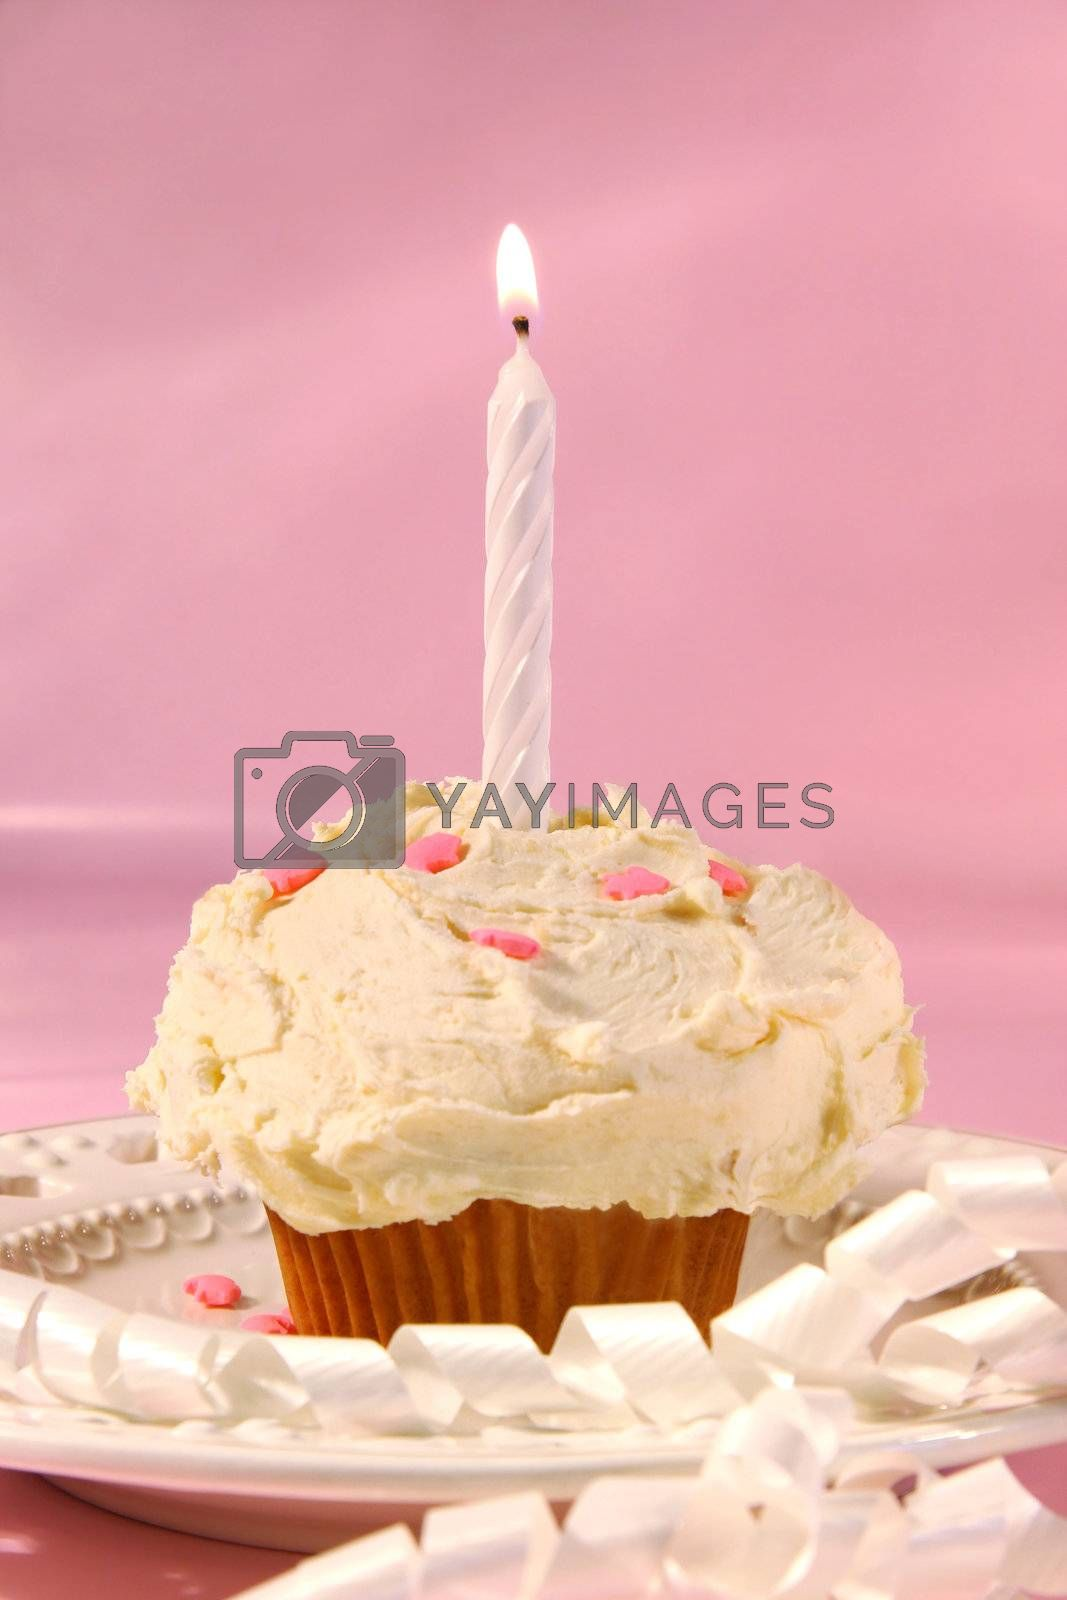 Little cupcake with candle on pink background